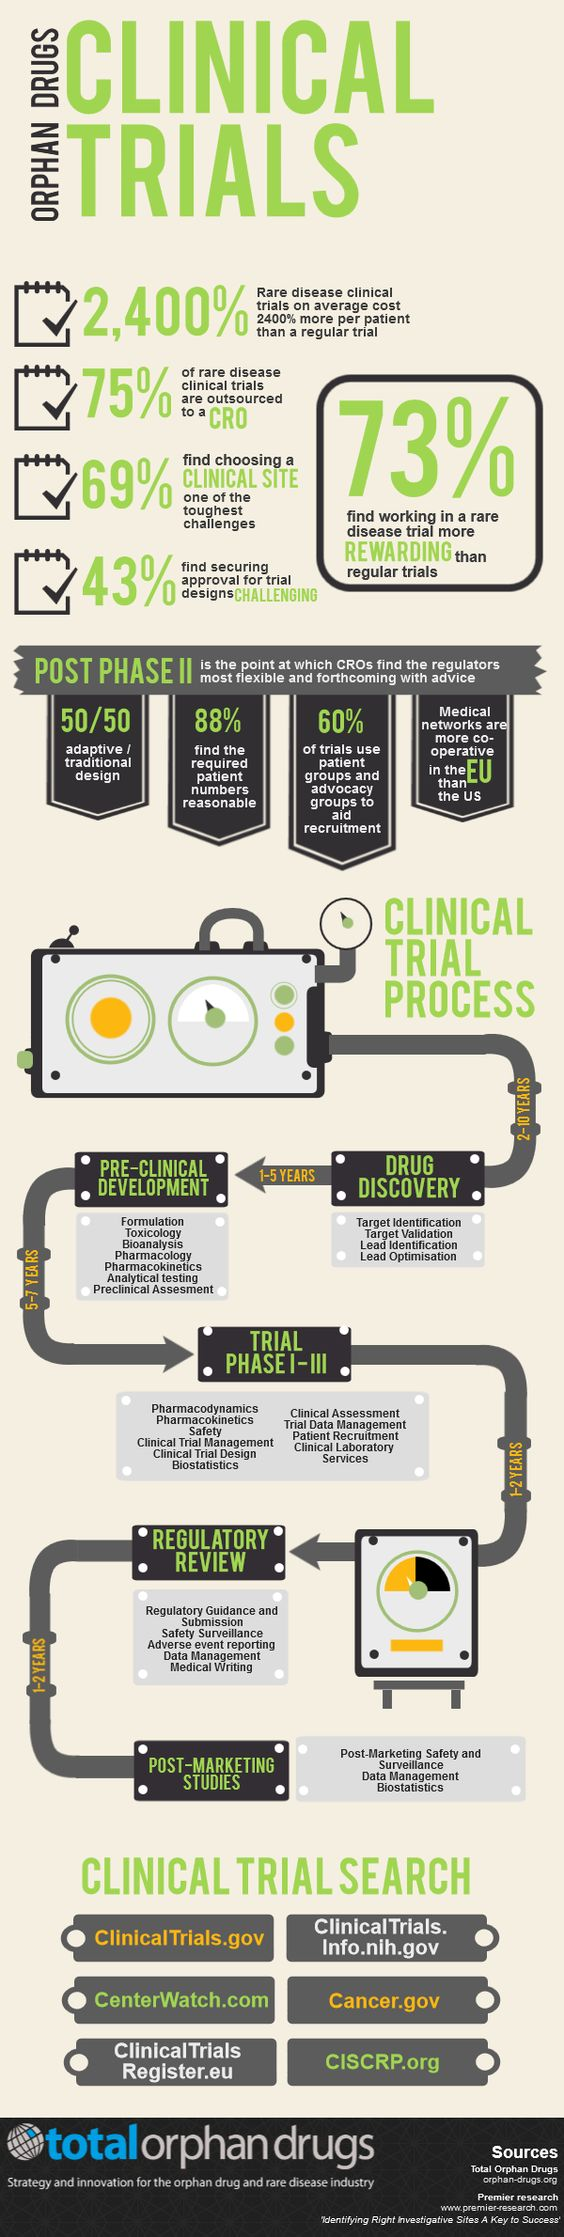 Better understand the clinical trial process. Help the orphan drugs get approved!